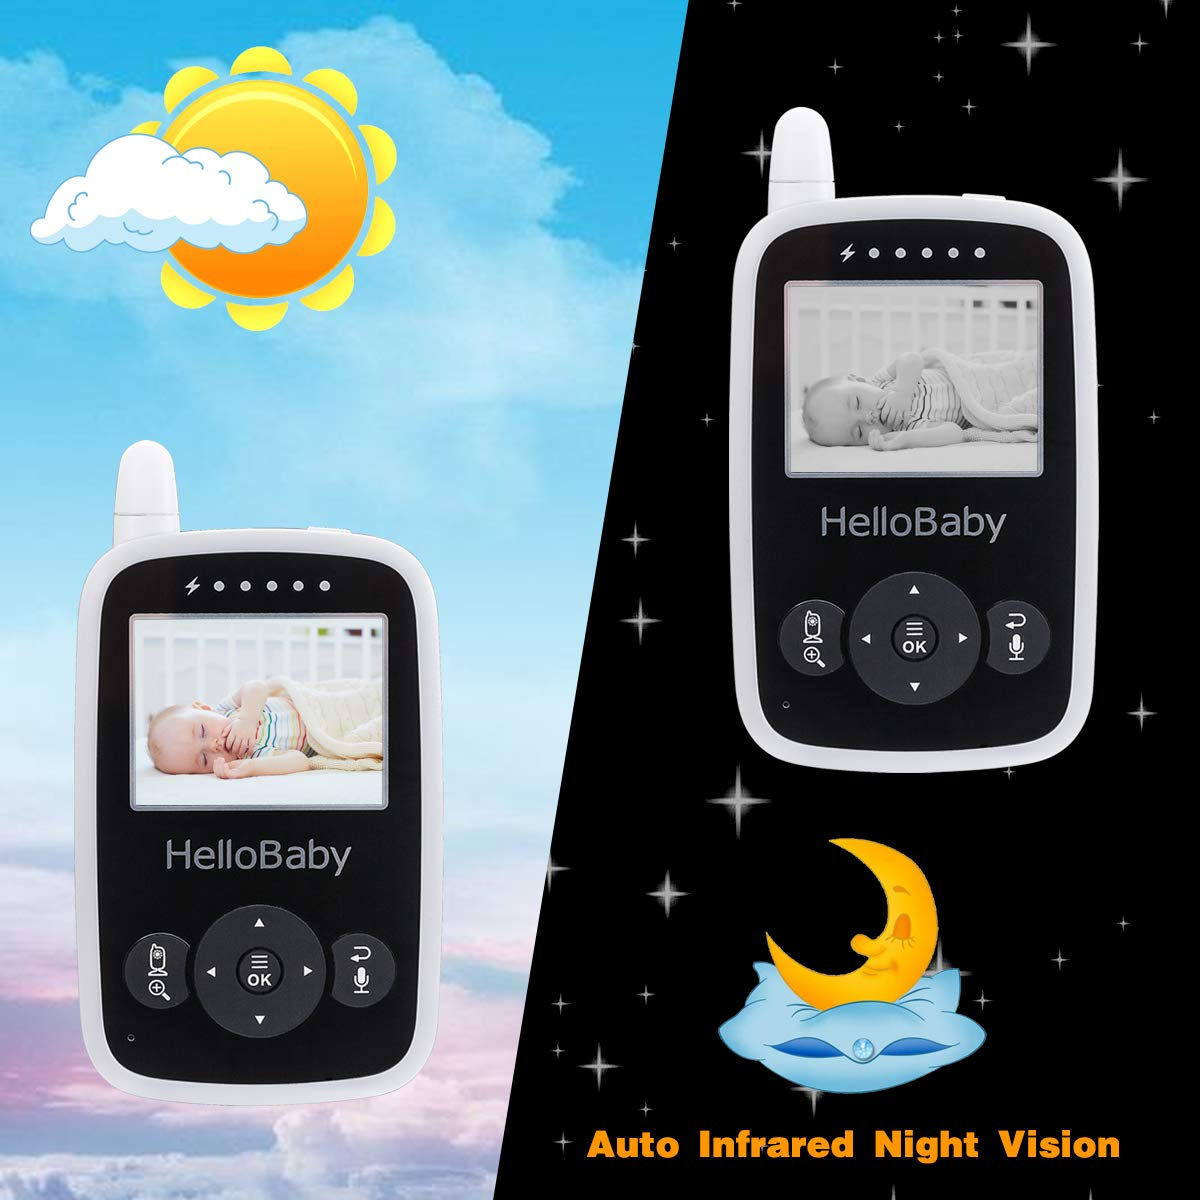 HelloBaby Video Baby Monitor with Camera - Infrared Night Vision, Two-Way Talk Back, Screen, Temperature Detection, Lullabies,Long Range, Private Data Protection and High Capacity Battery by HelloBaby (Image #5)